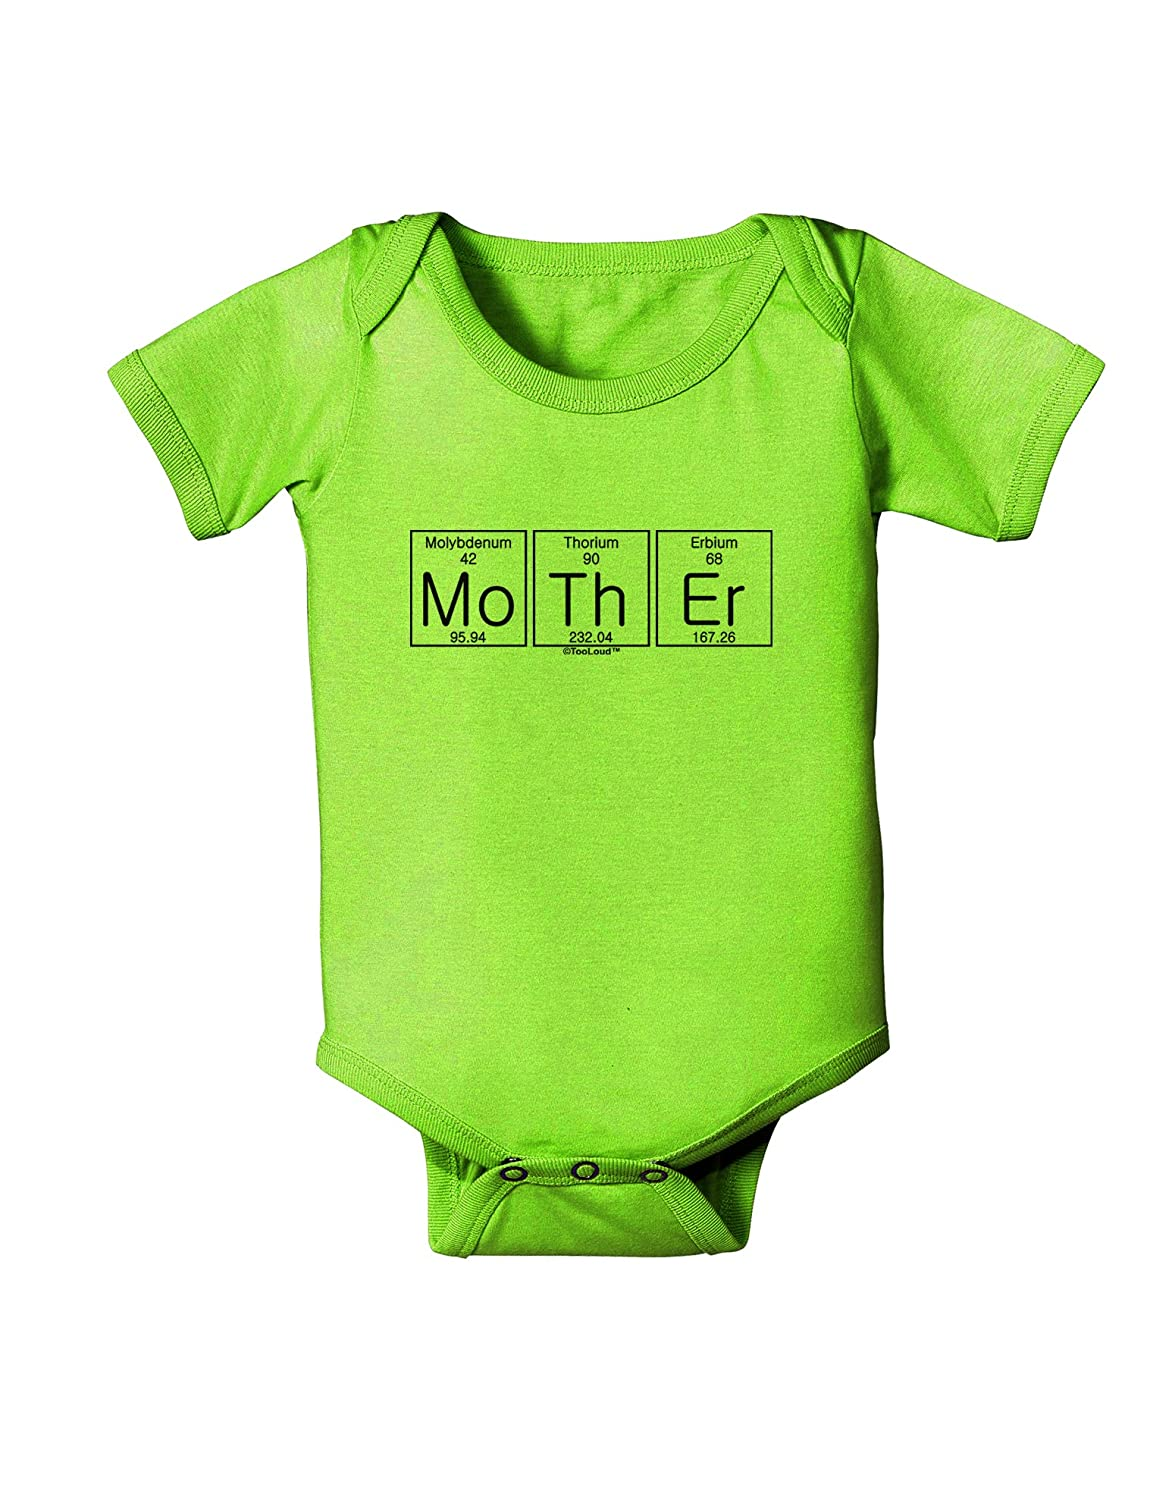 Periodic Table Baby Romper Bodysuit TooLoud Mother